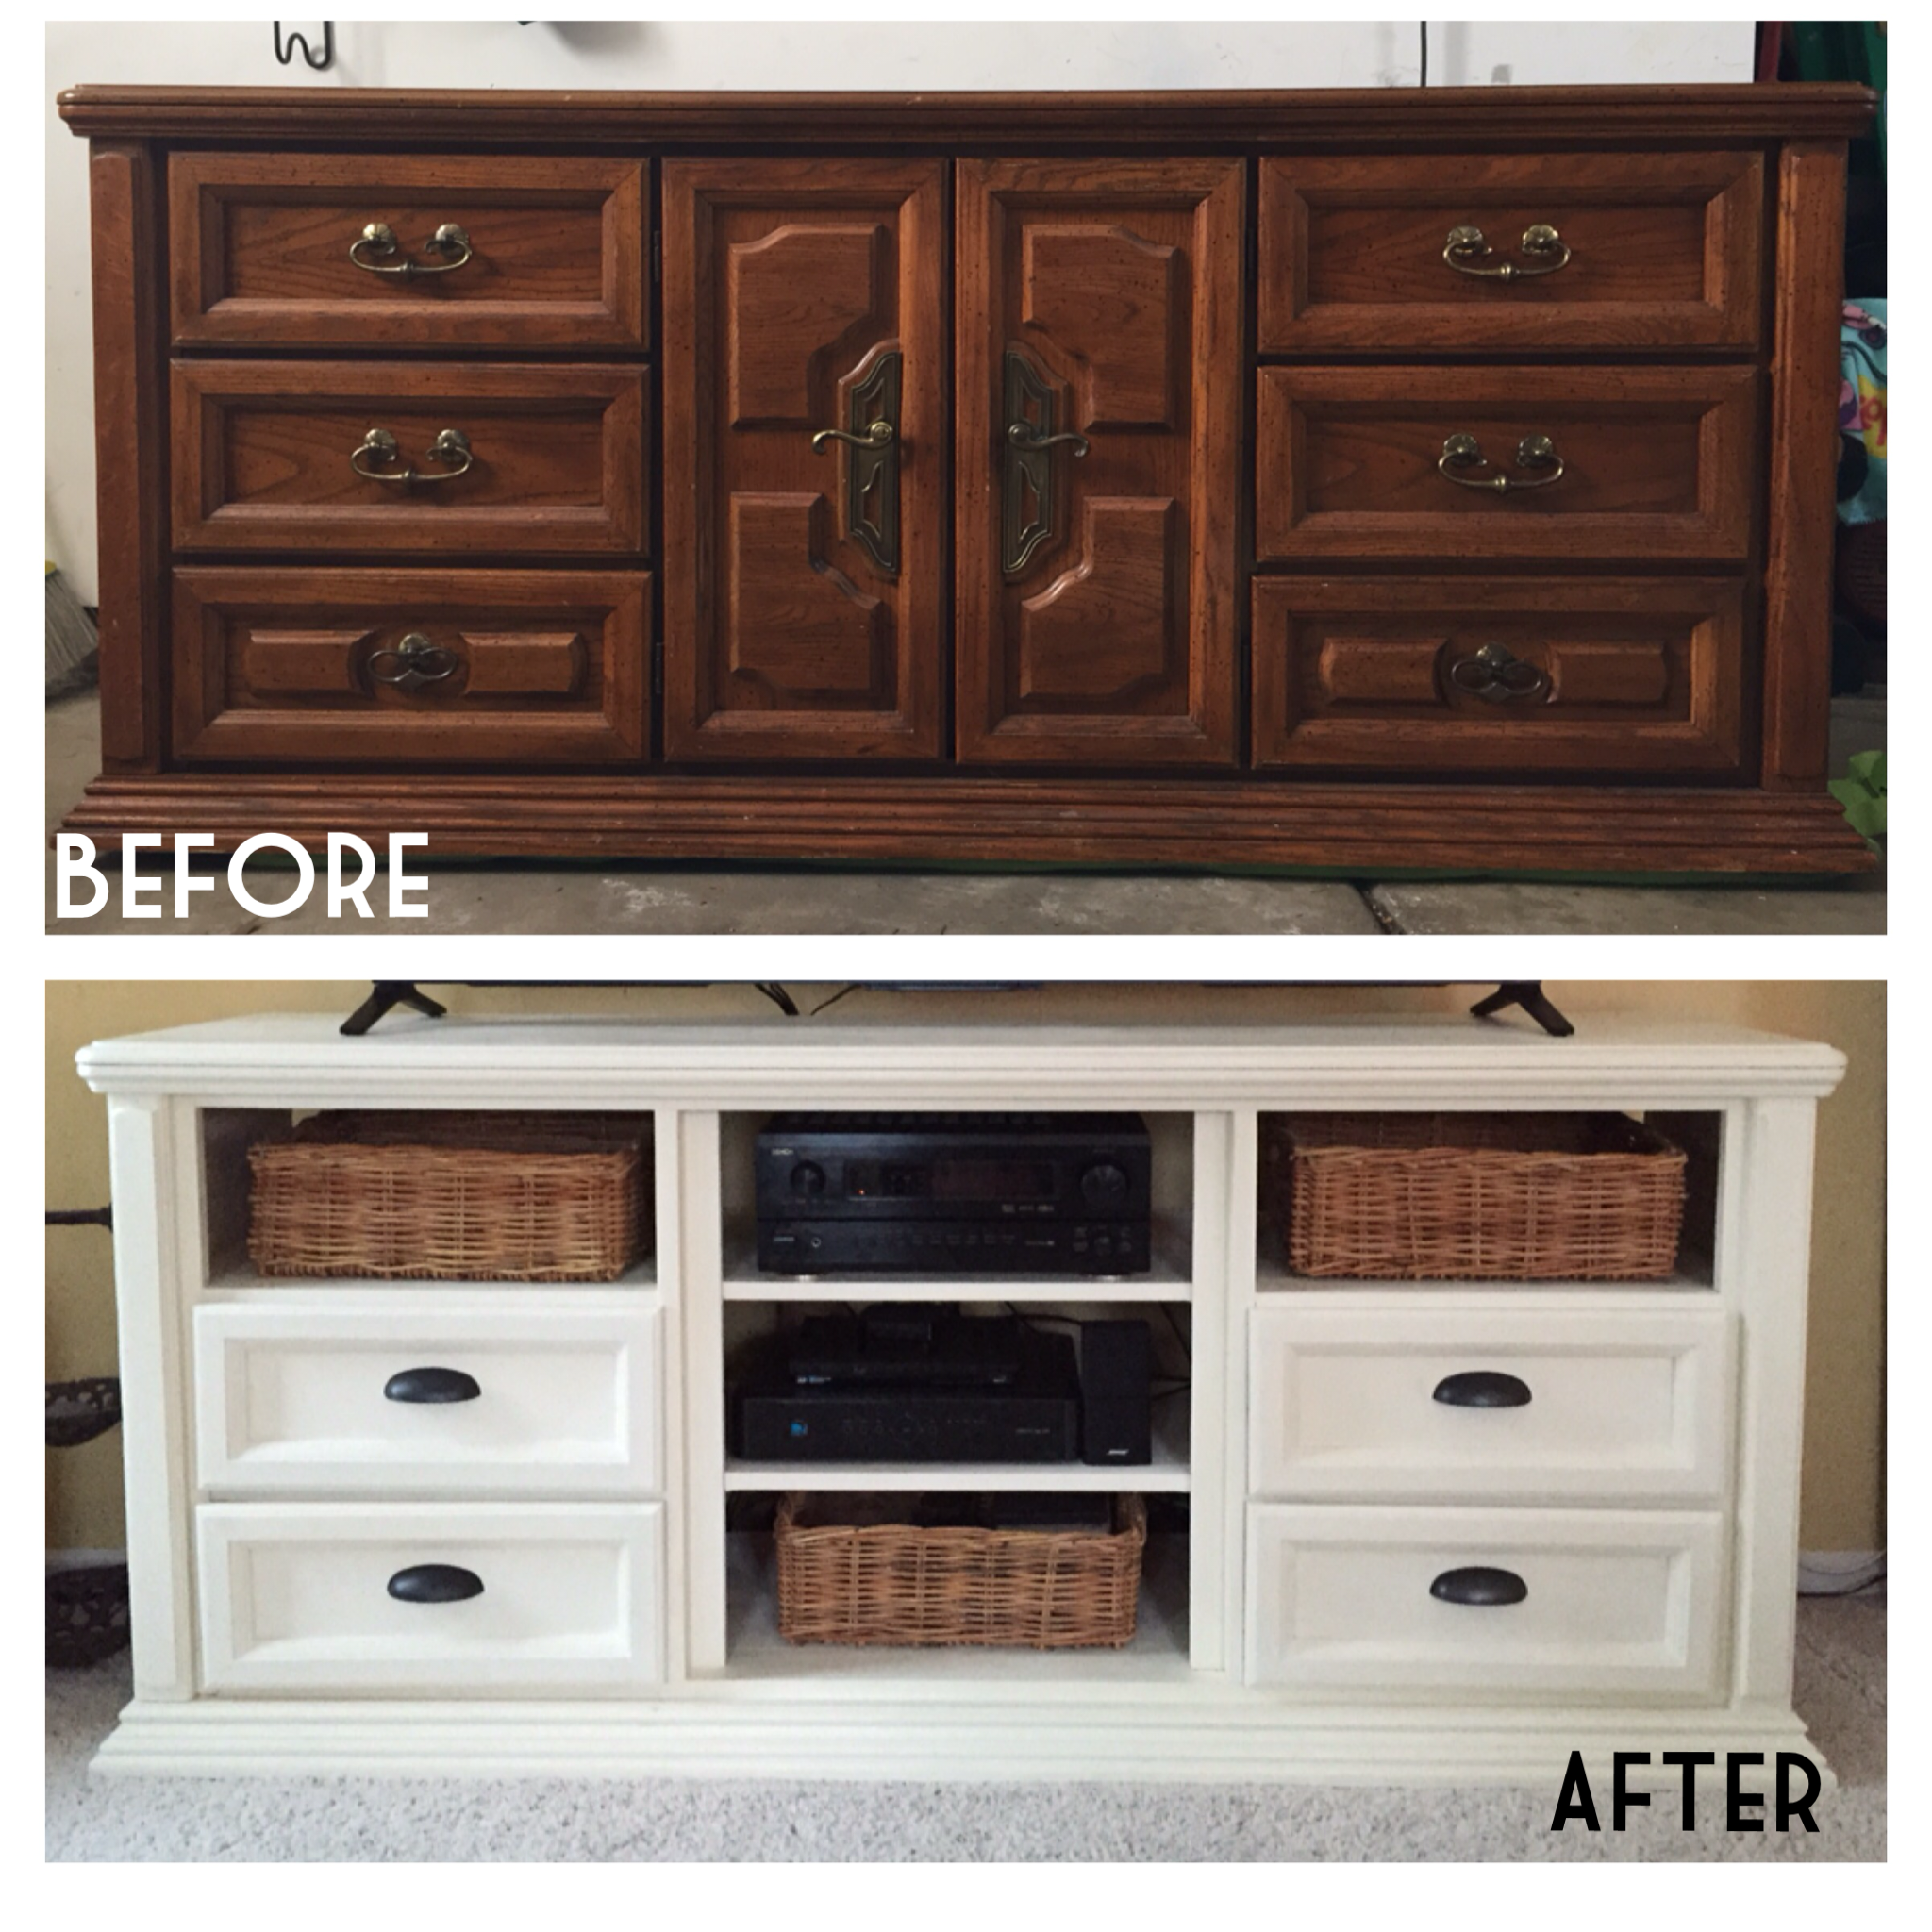 Refurbished Dresser Turned Into Tv Console Annie Sloan